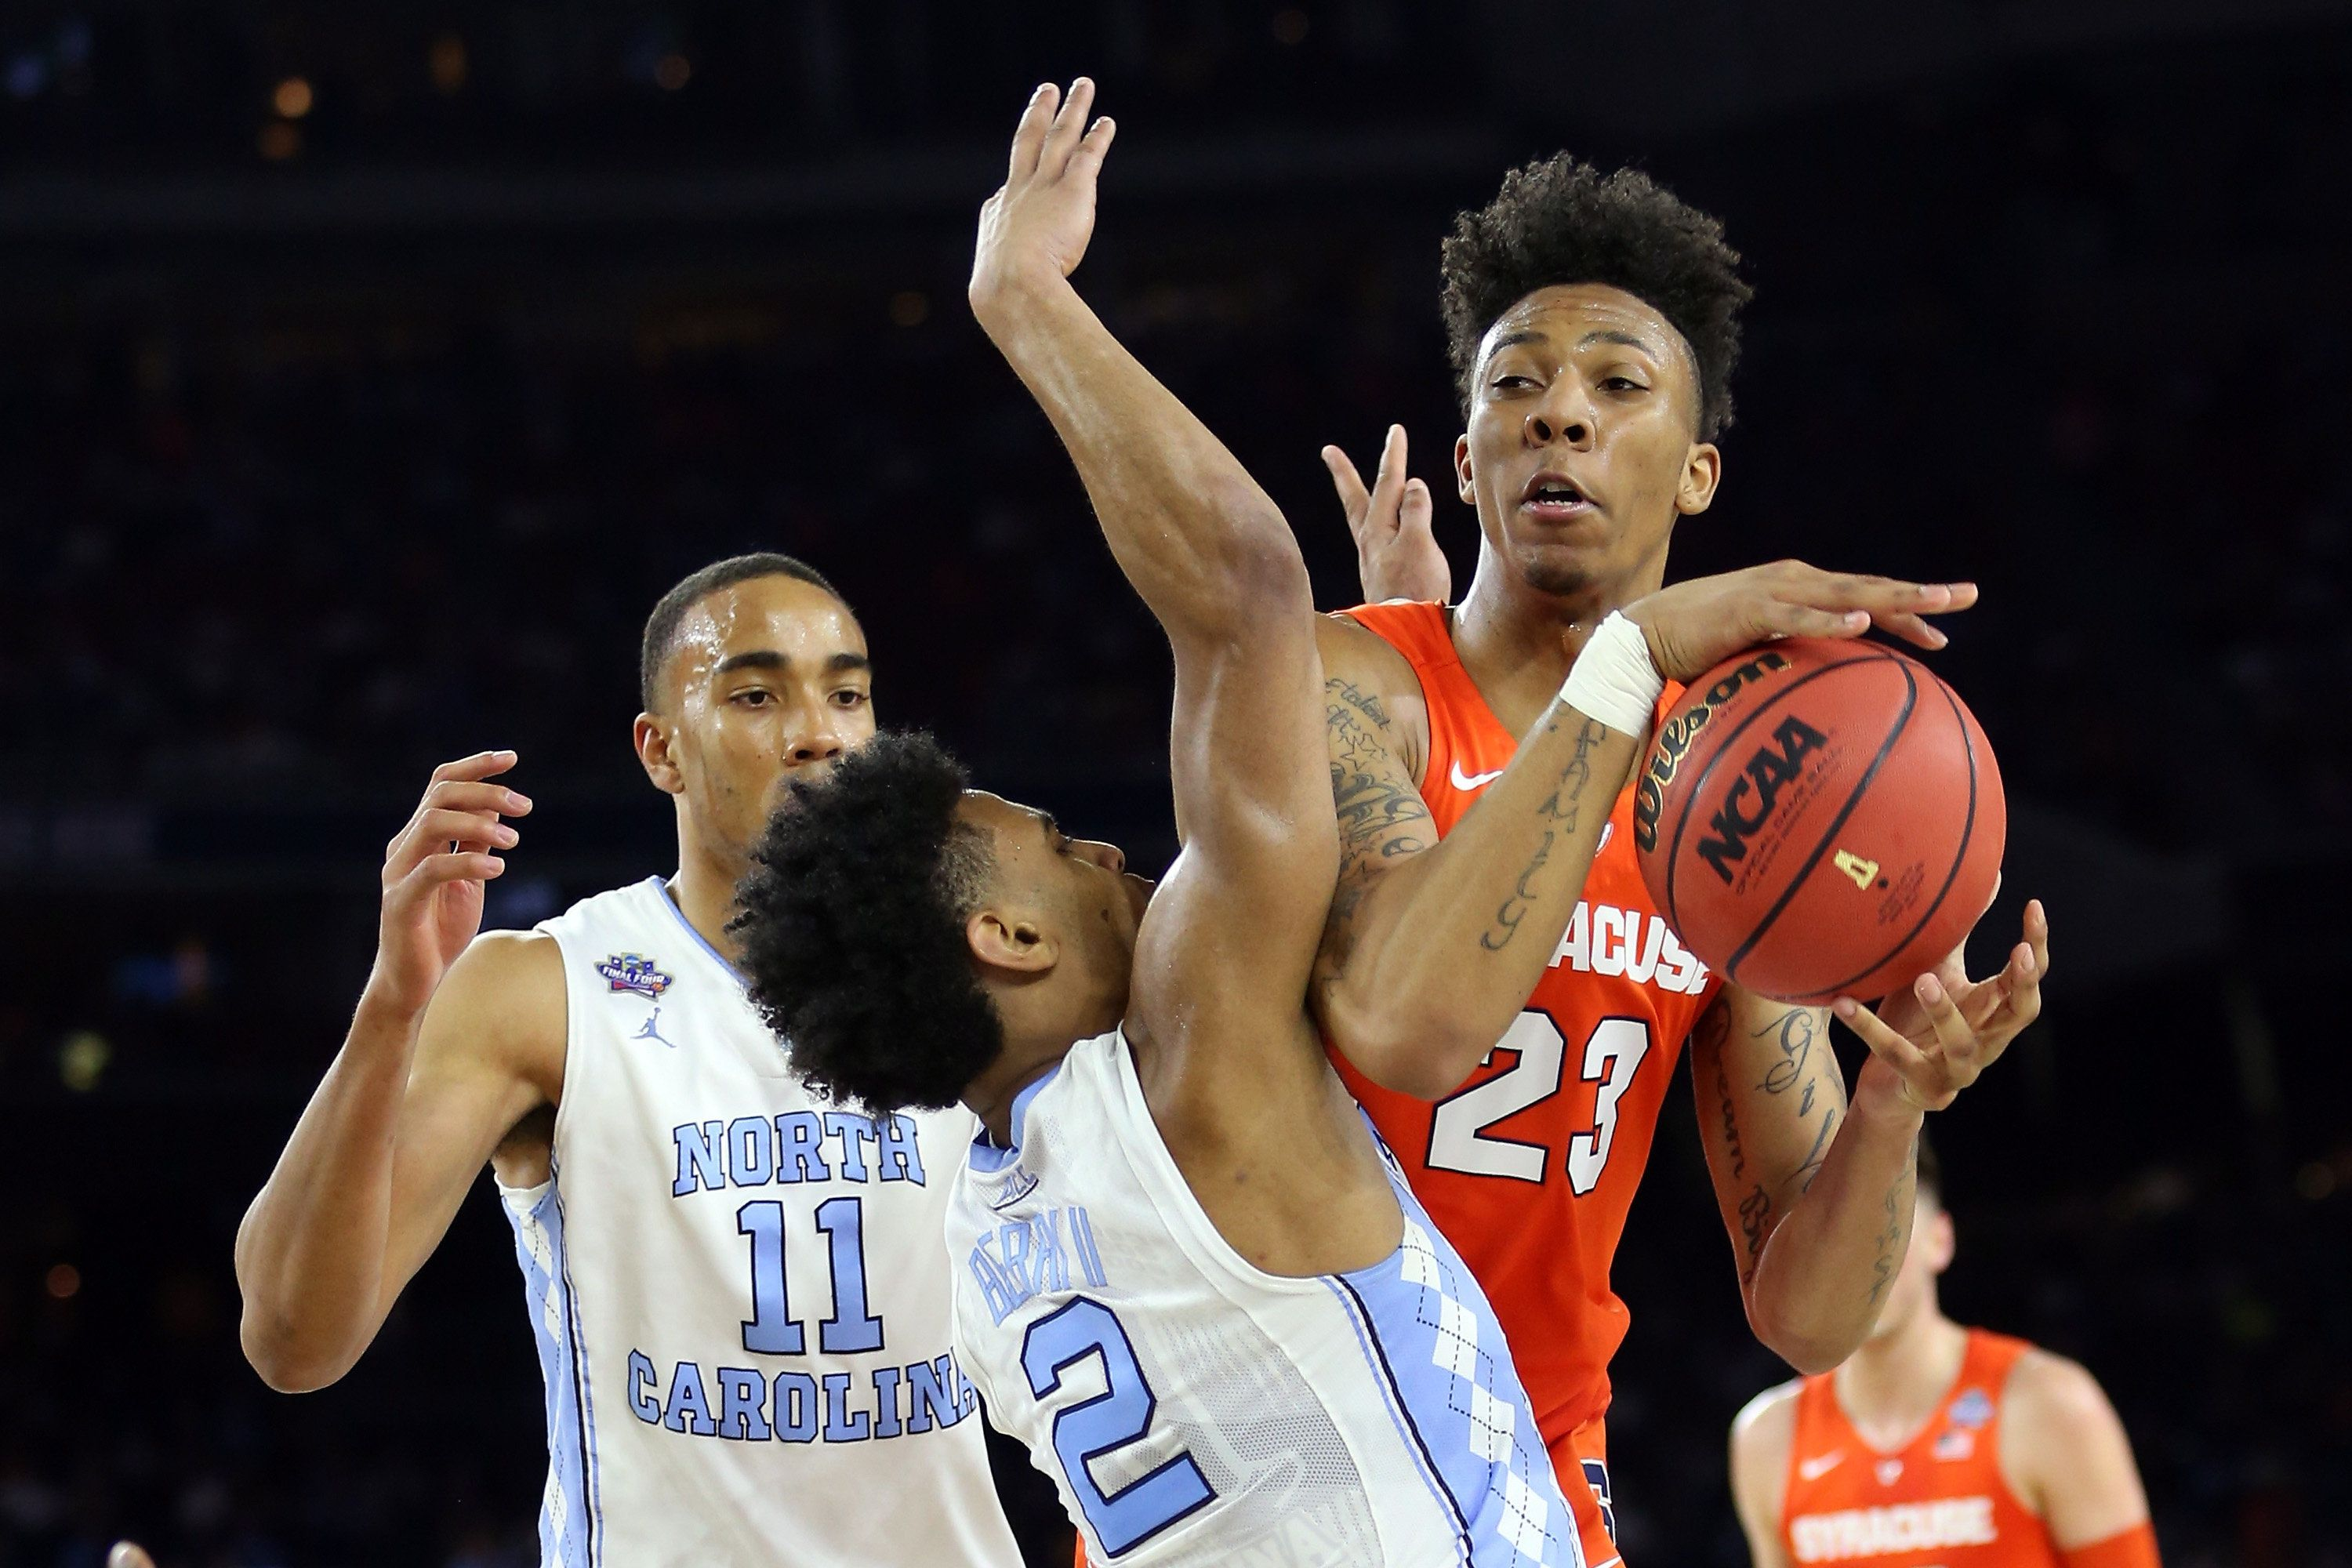 HOUSTON, TEXAS - APRIL 02:  Malachi Richardson #23 of the Syracuse Orange handles the ball against Joel Berry II #2 of the North Carolina Tar Heels in the second half during the NCAA Men's Final Four Semifinal at NRG Stadium on April 2, 2016 in Houston, Texas.  (Photo by Streeter Lecka/Getty Images)